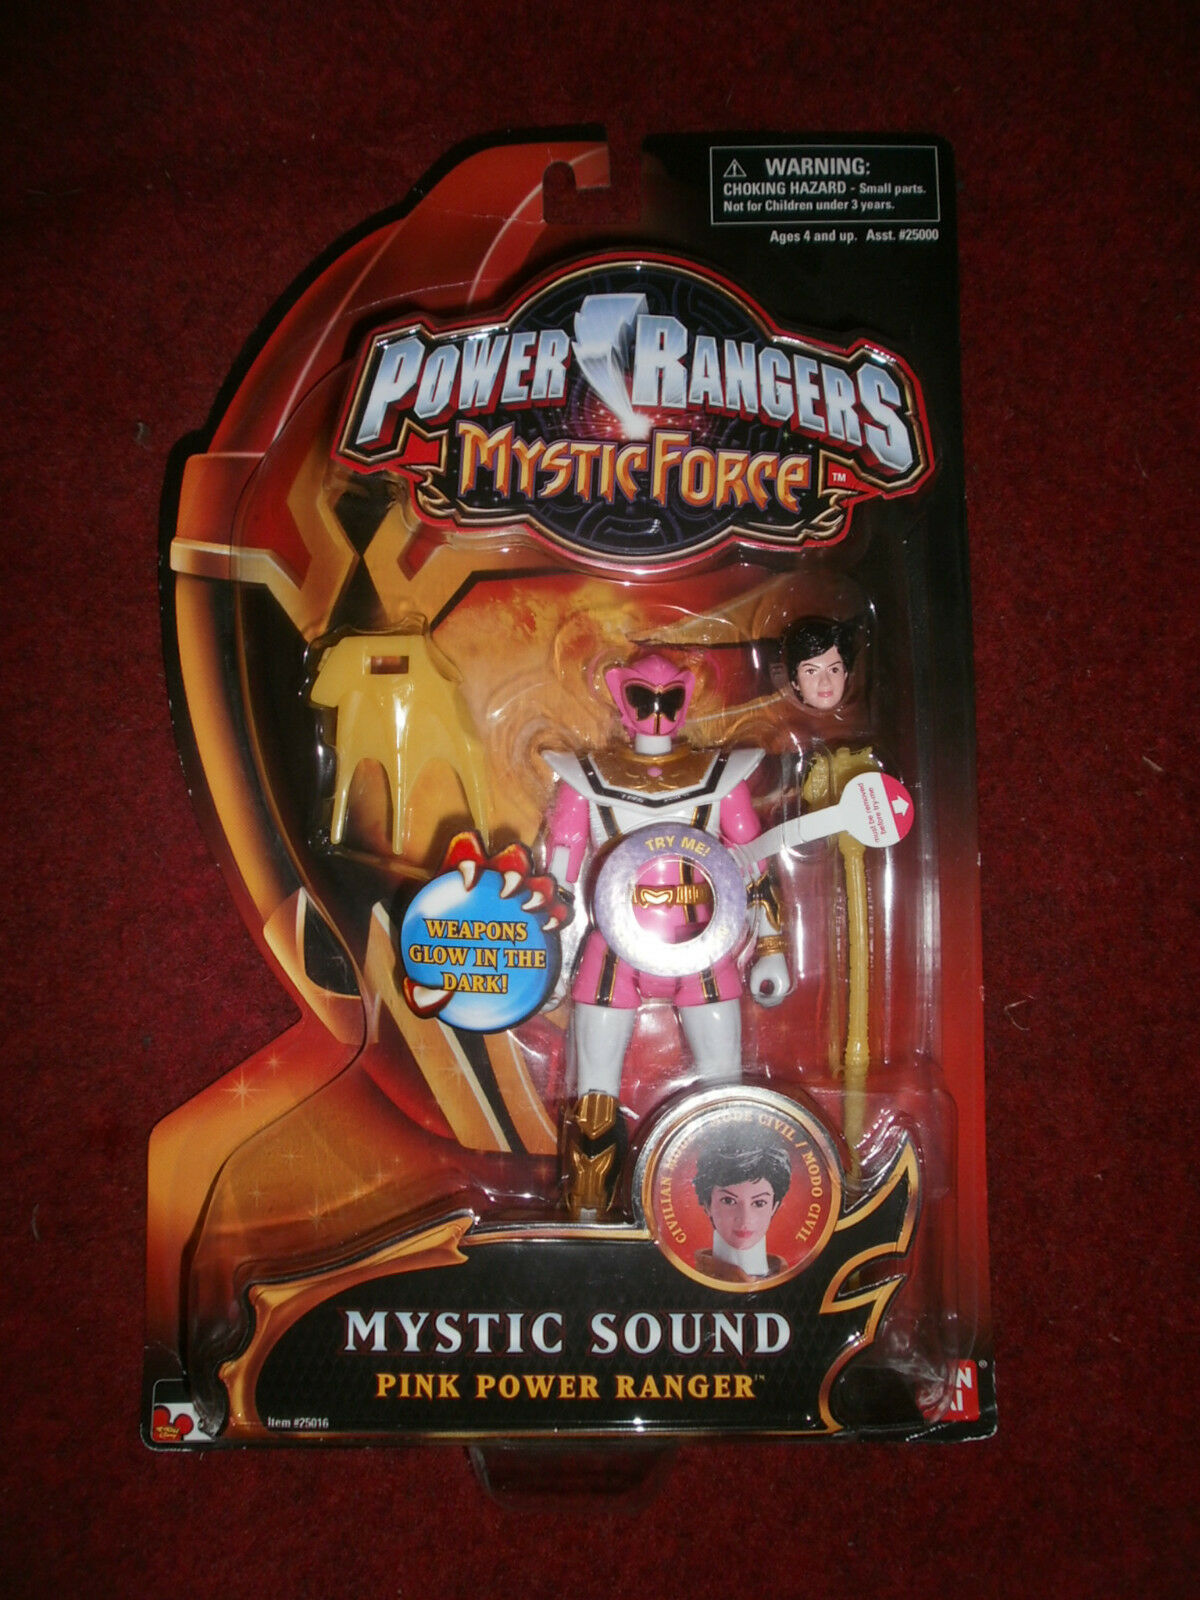 POWER RANGERS MYSTIC FORCE MYSTIC SOUND PINK POWER RANGER